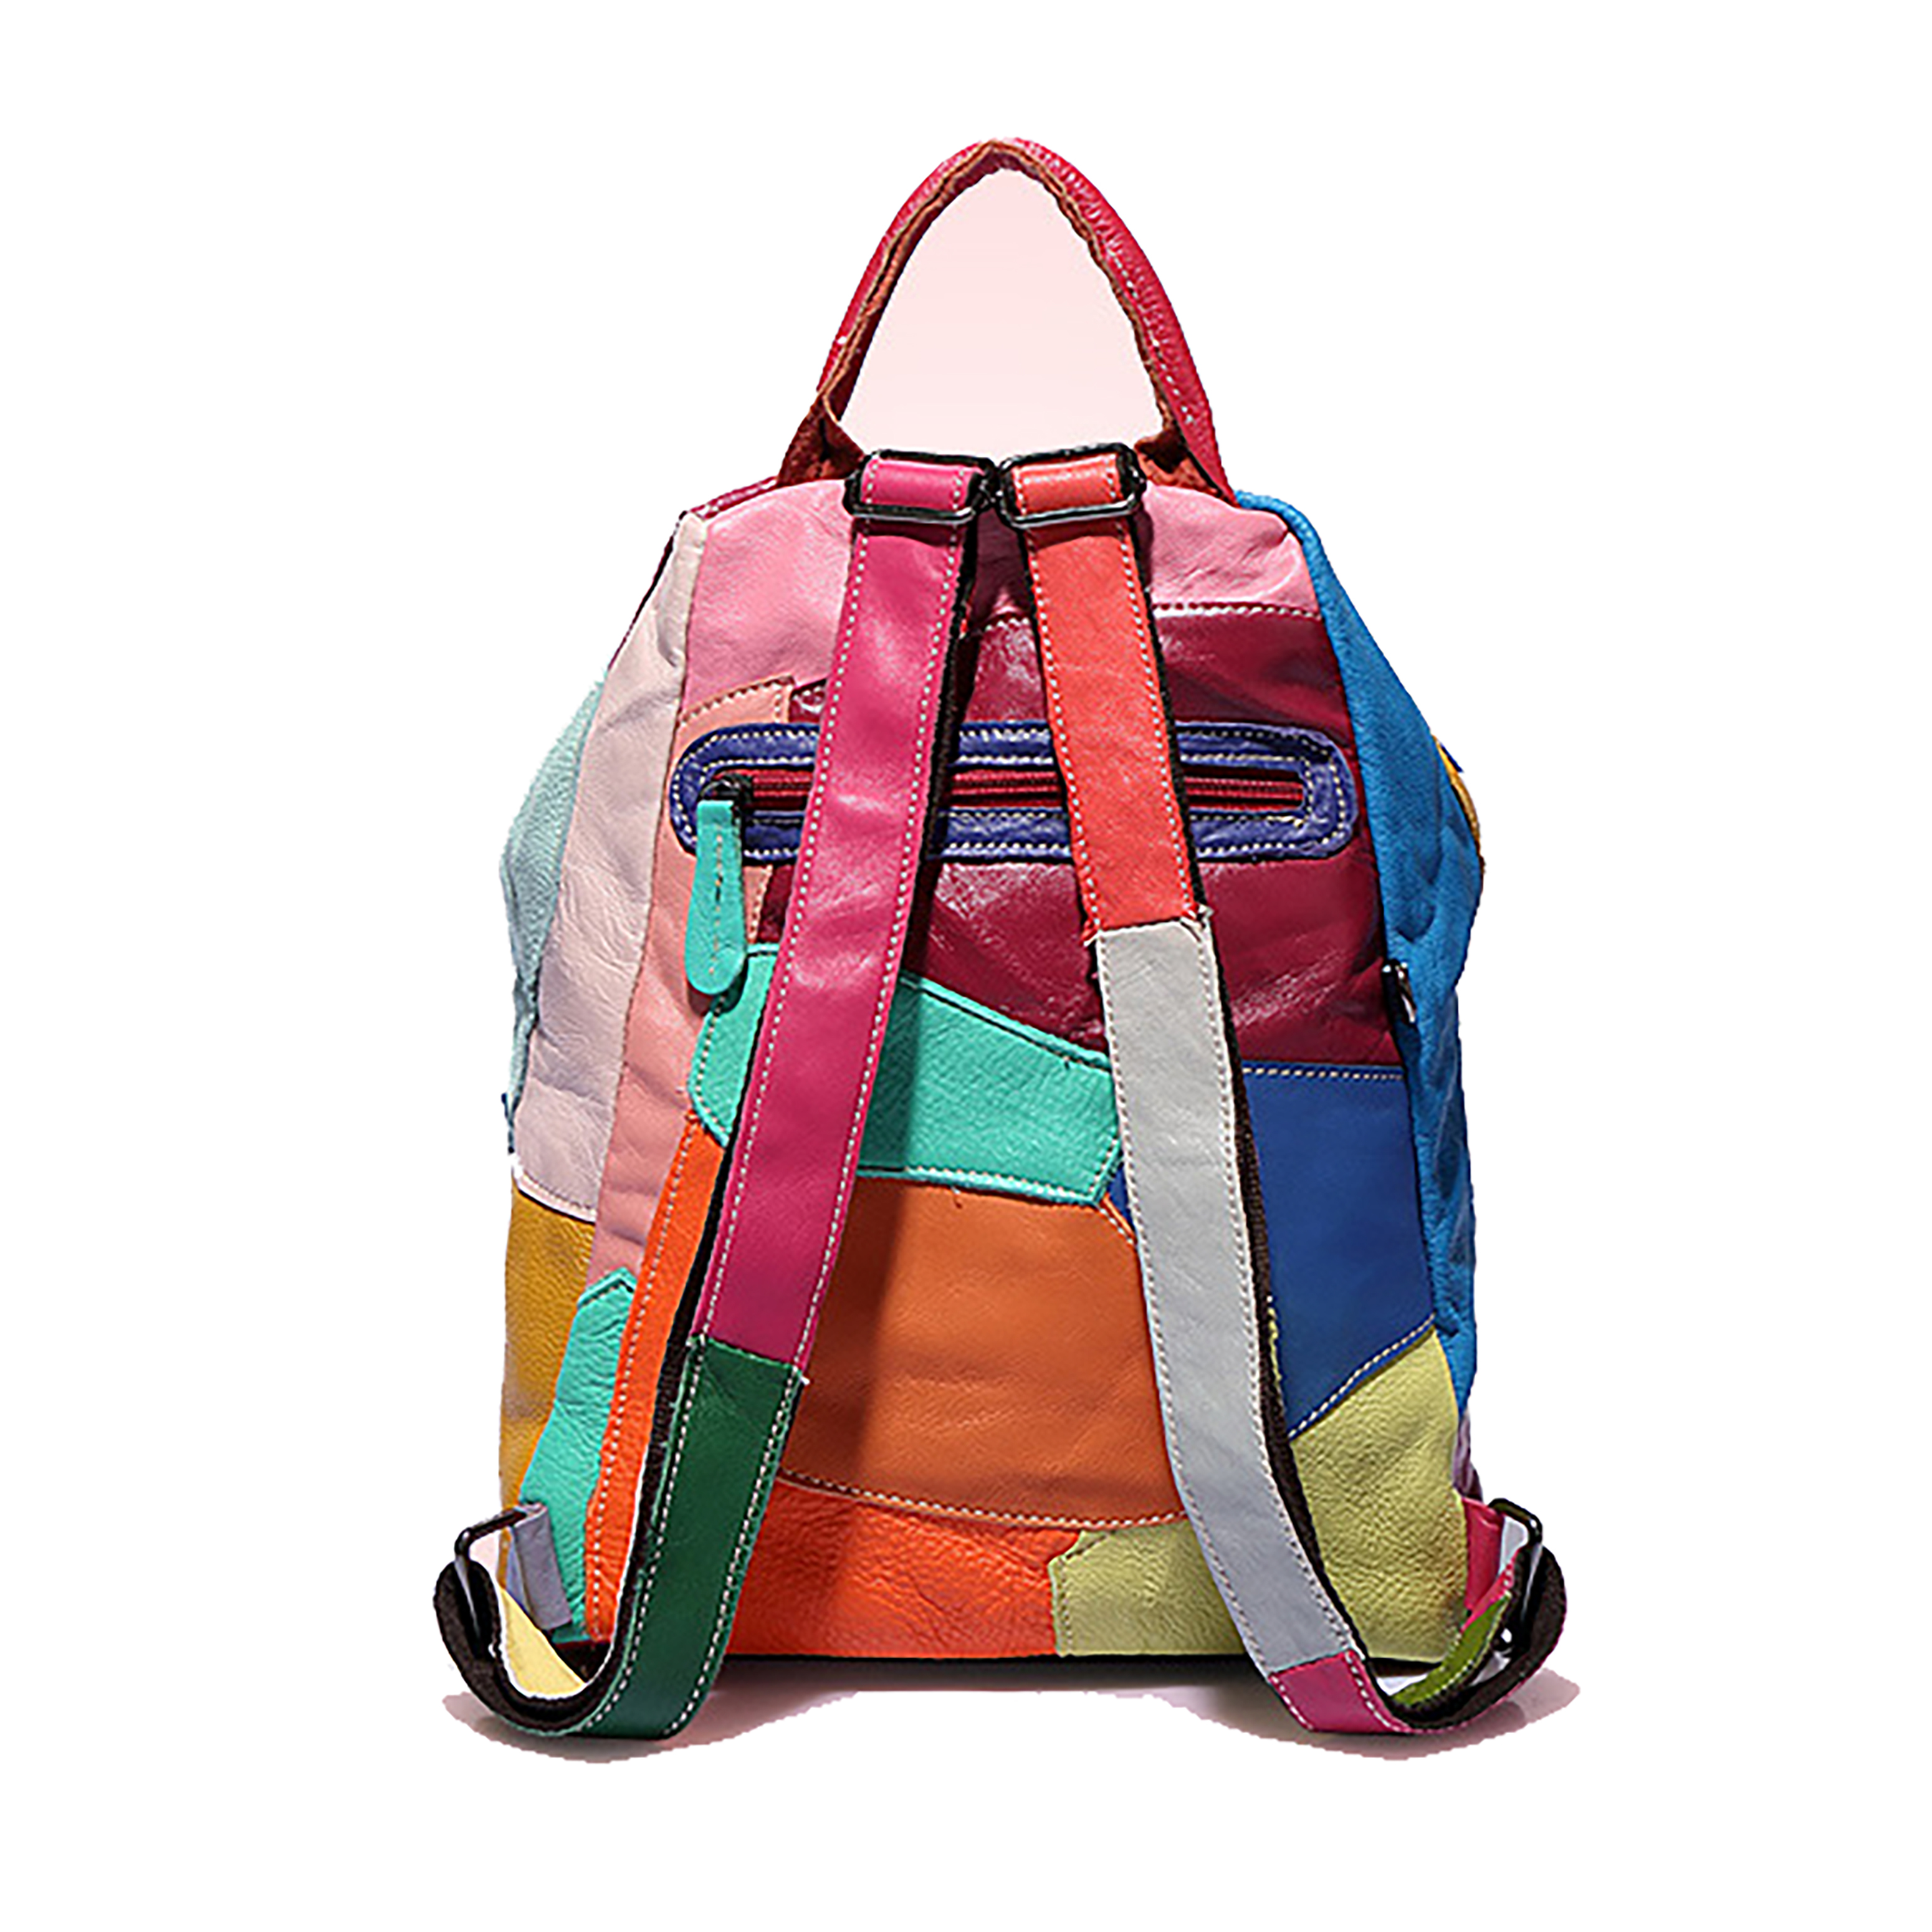 Female Waterproof backpack classic High quality Cowhide leather Backpack Muti-color   and Black backpack  fashion Women Backpack